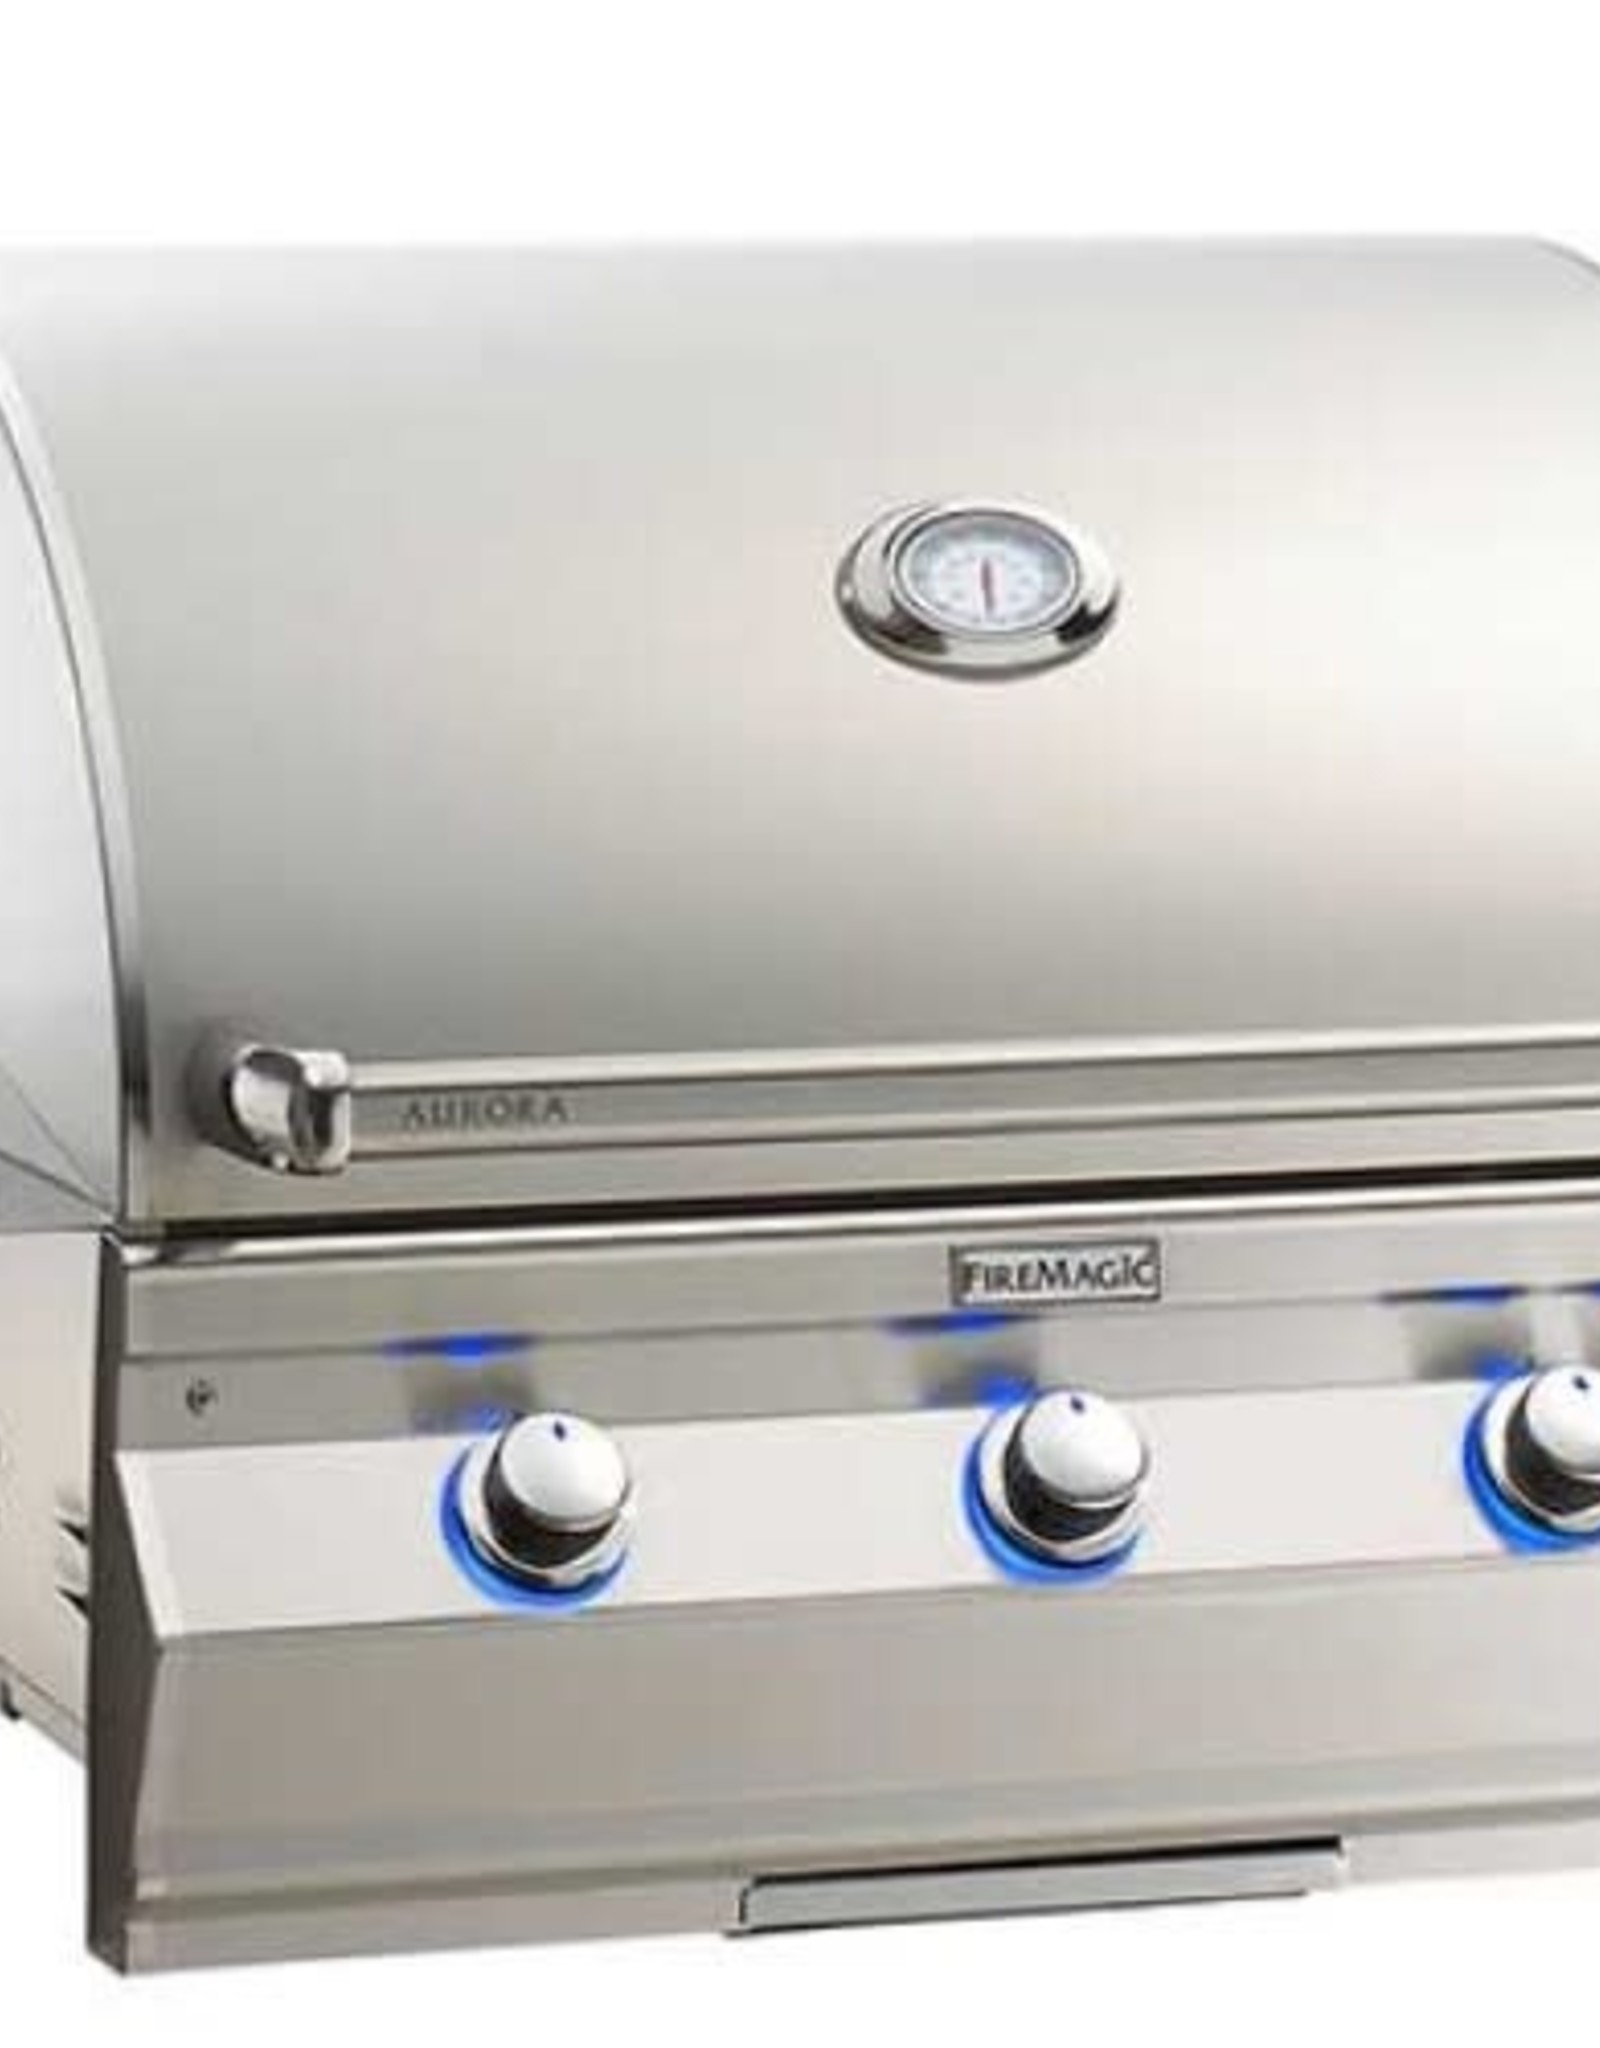 Fire Magic Fire Magic - Aurora A660i 30-inch Built-In Grill Without Rotisserie